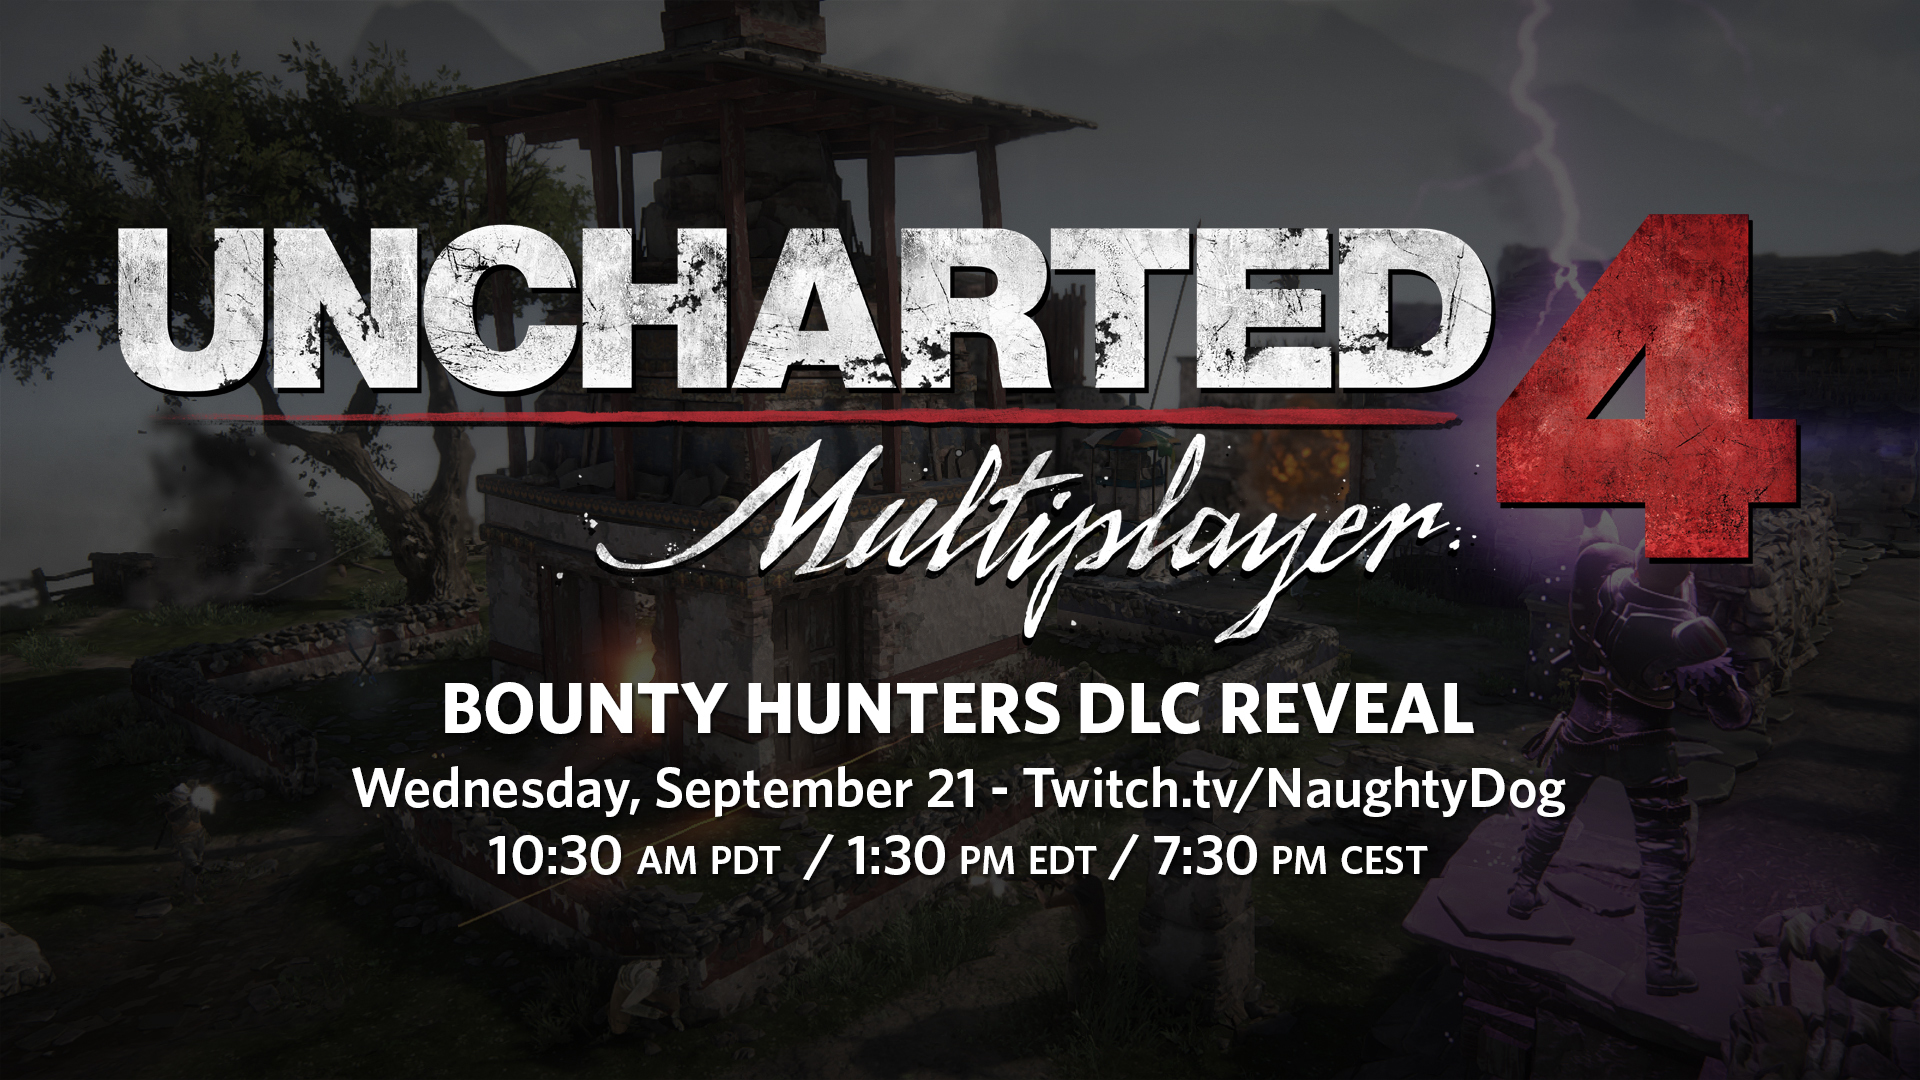 Uncharted 4 Multiplayer: Bounty Hunters DLC Reveal Set for September 21